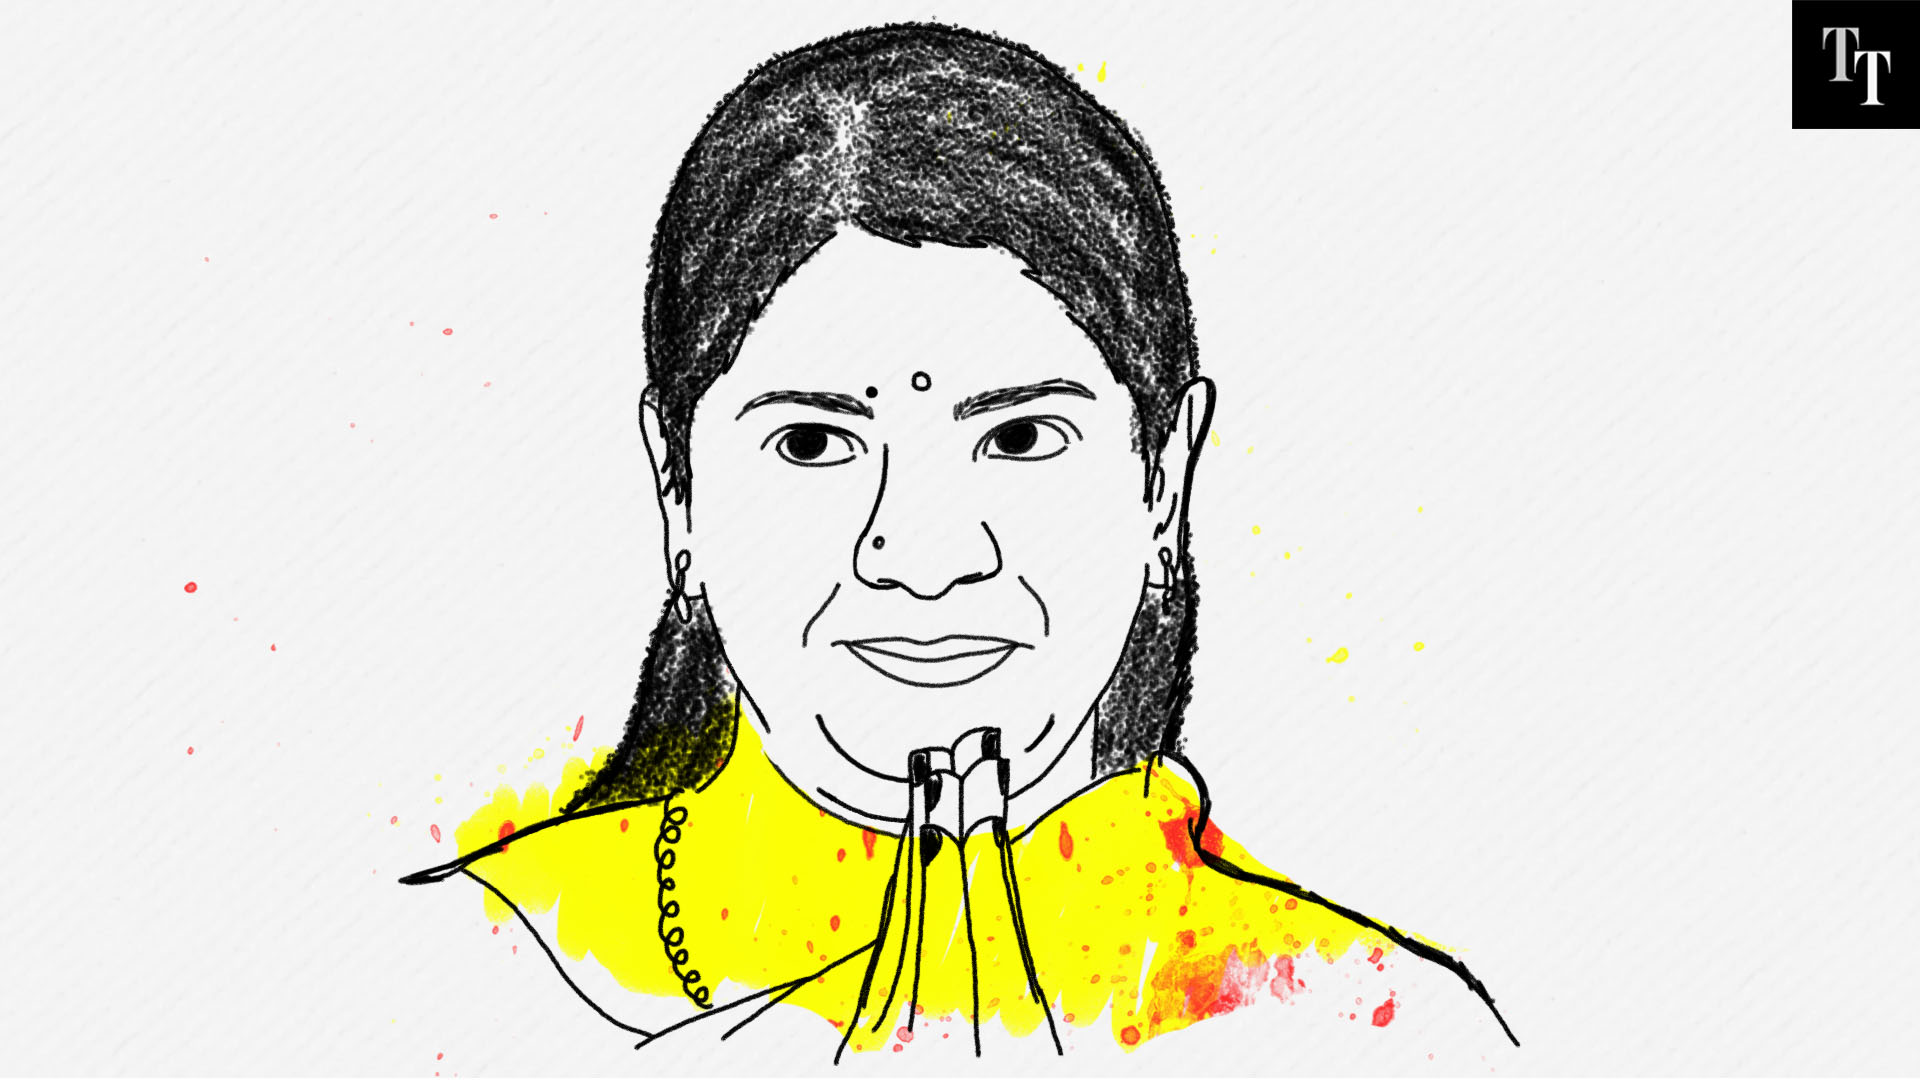 A two time Rajya Sabha MP, Kanimozhi faced the electorate for the first time since her entry into politics in 2007